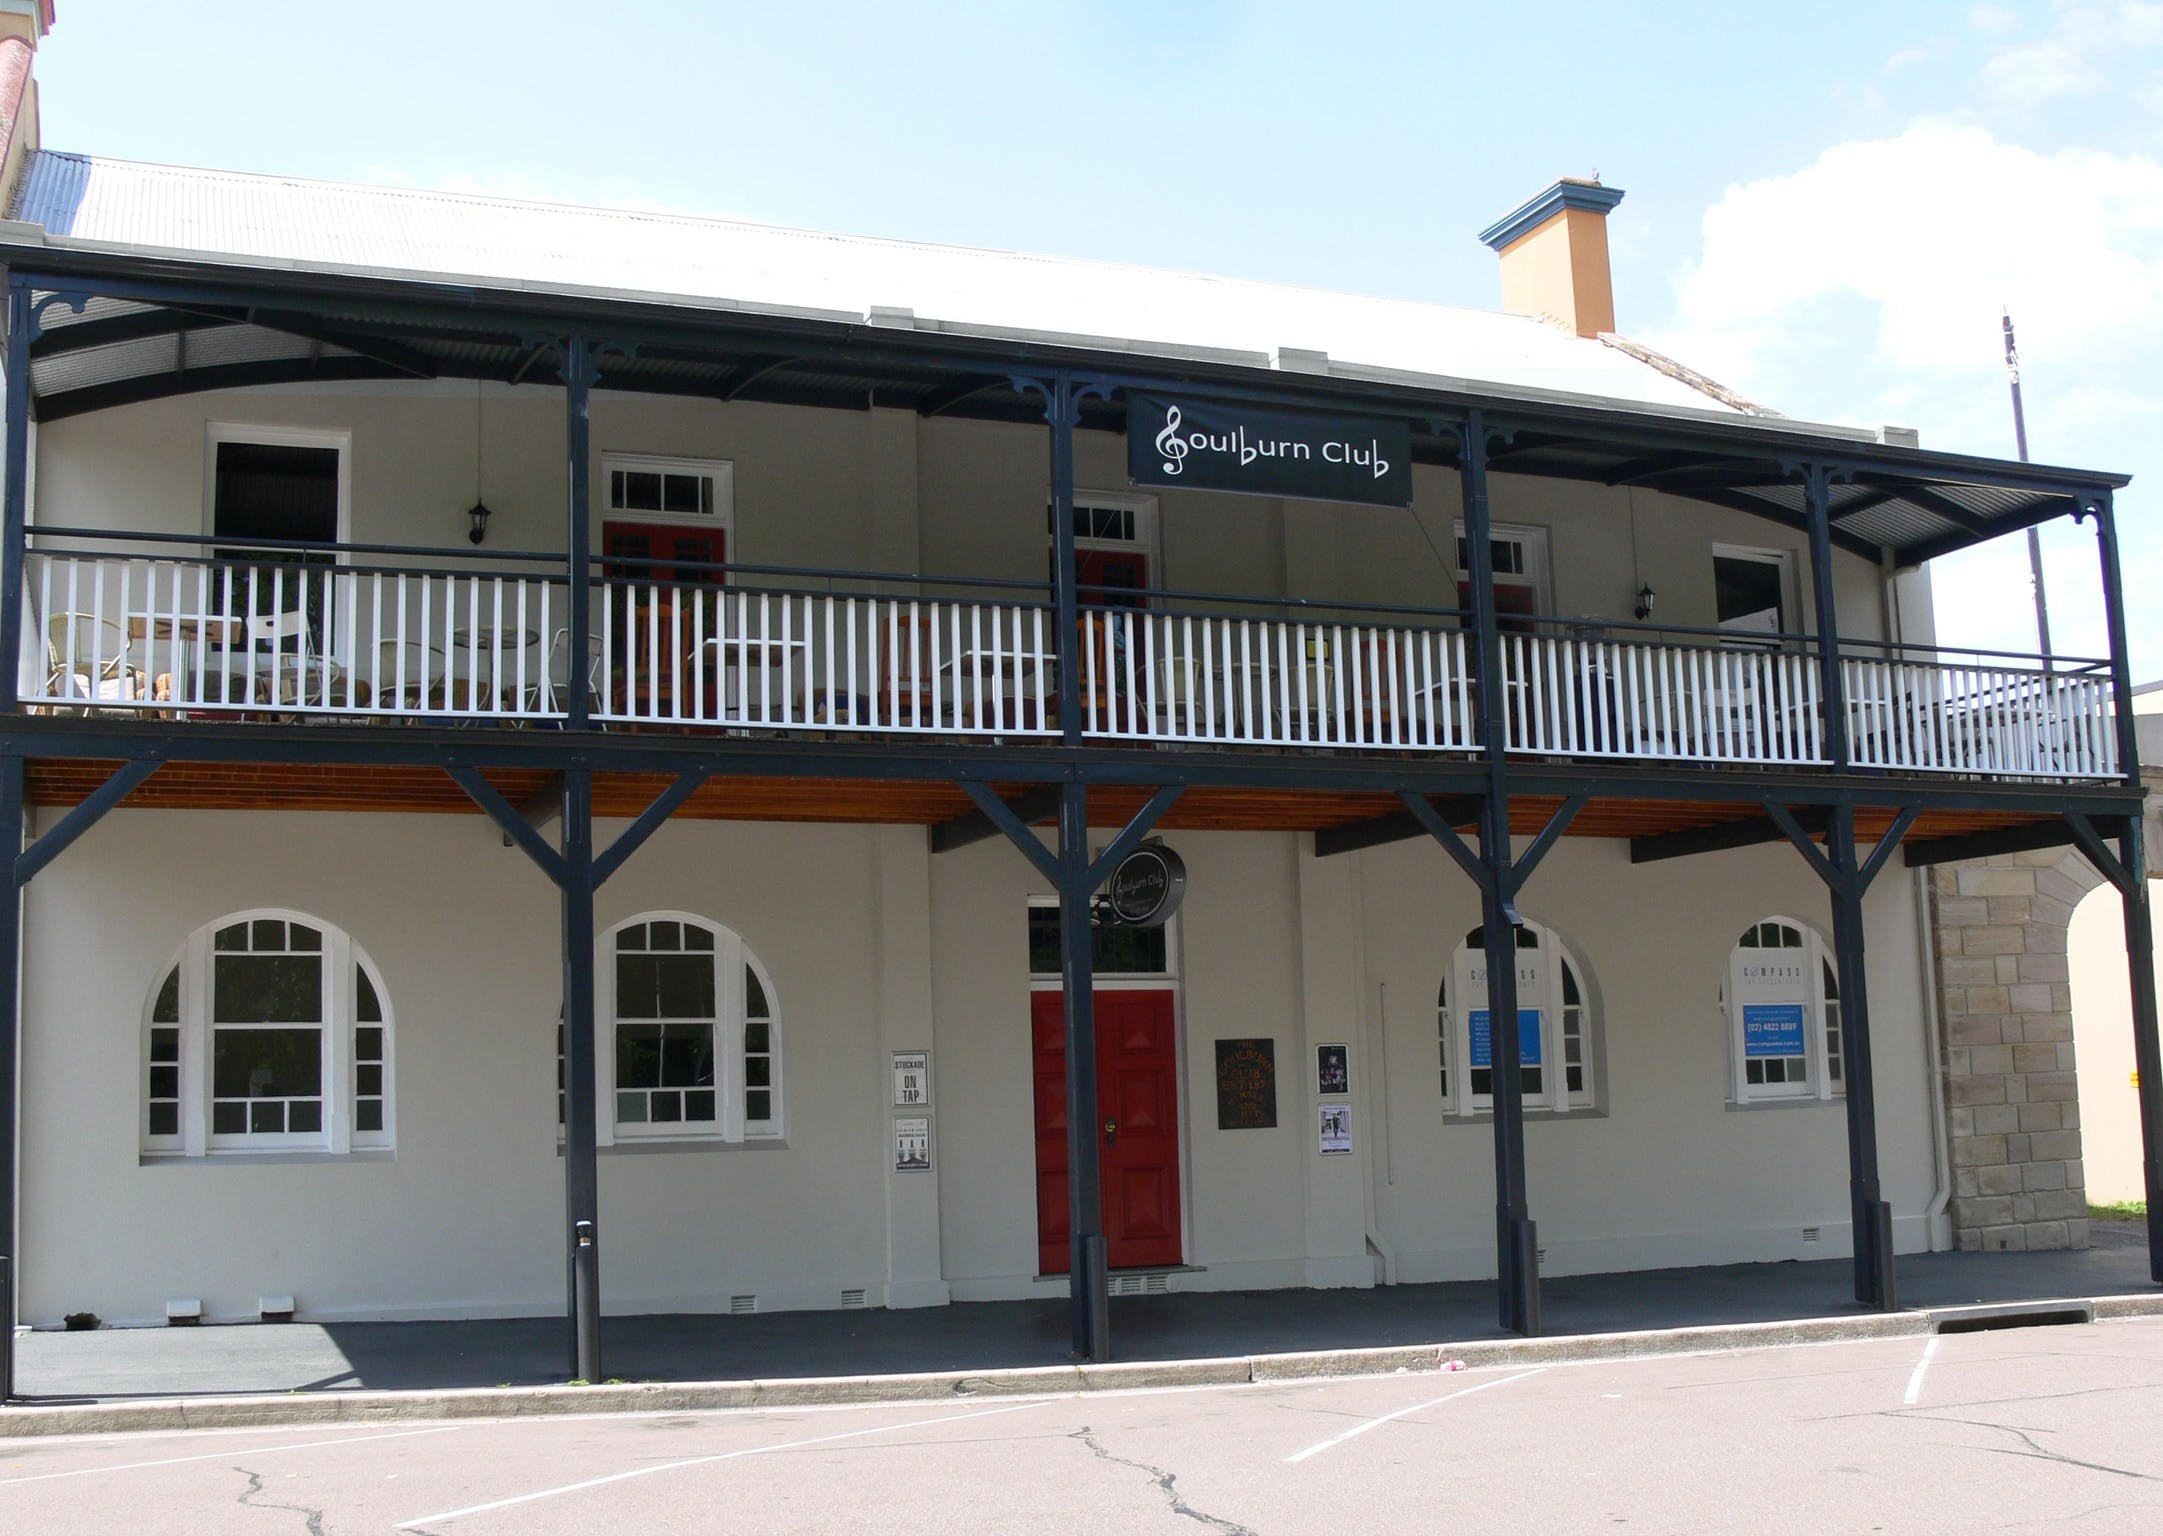 Open Mic Night at the Goulburn Club - VIC Tourism